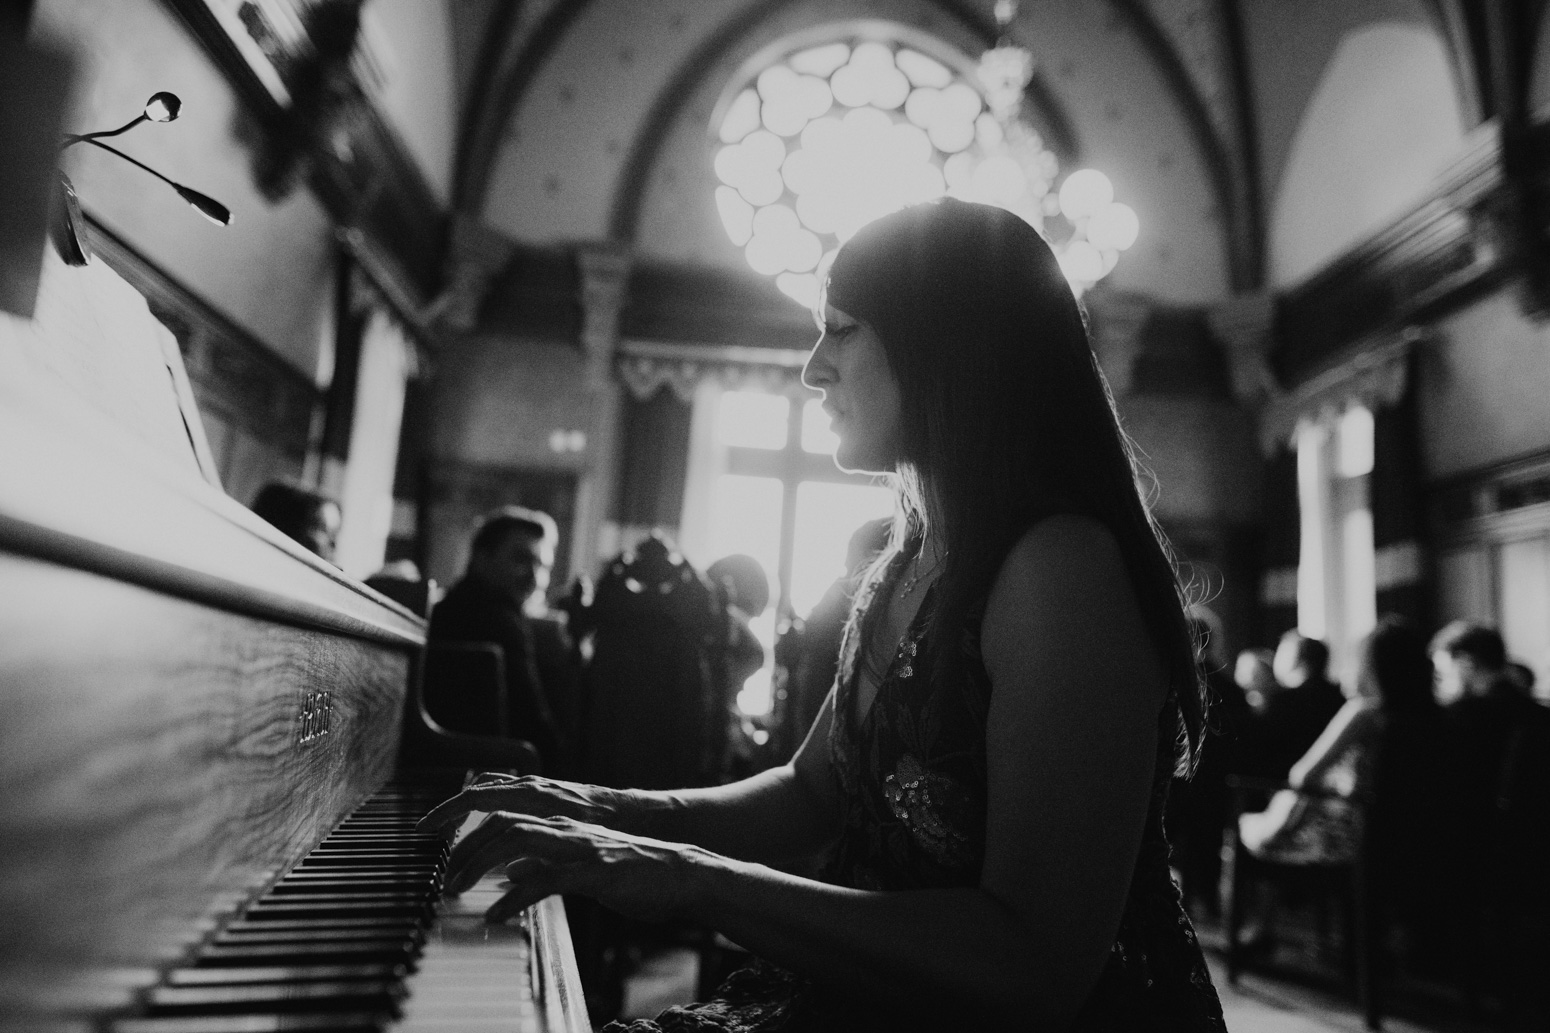 Melanie Gardner singing and playing the piano in Königswinter